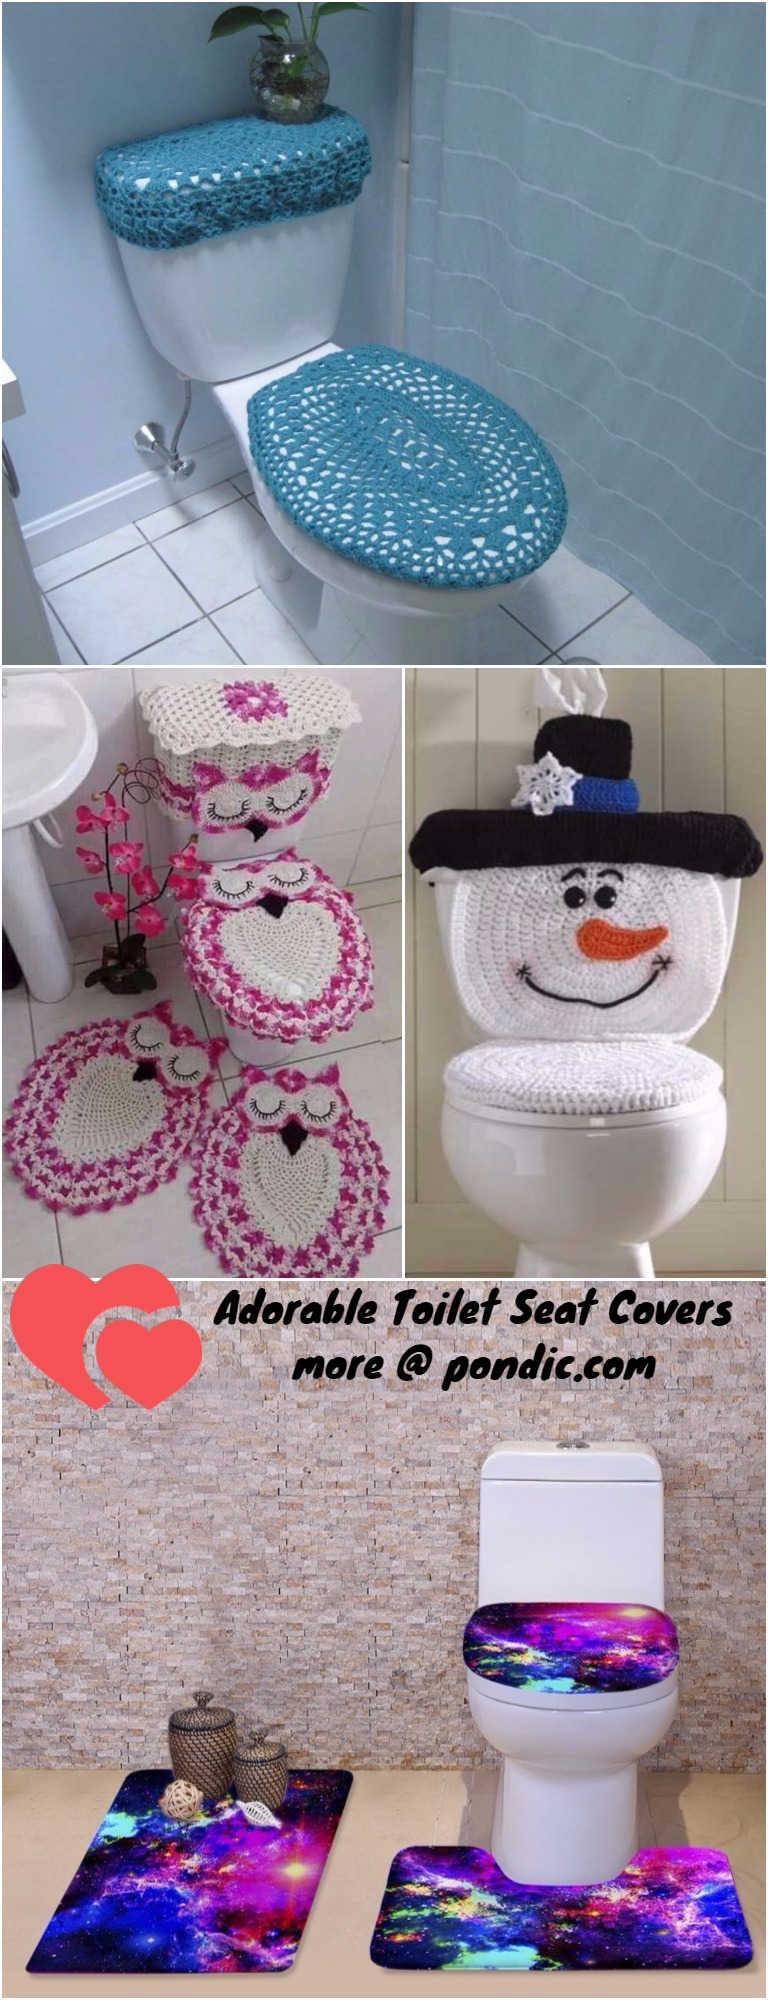 Wondrous Adorable Toilet Seat Covers Everyone Loves To Have Pondic Dailytribune Chair Design For Home Dailytribuneorg